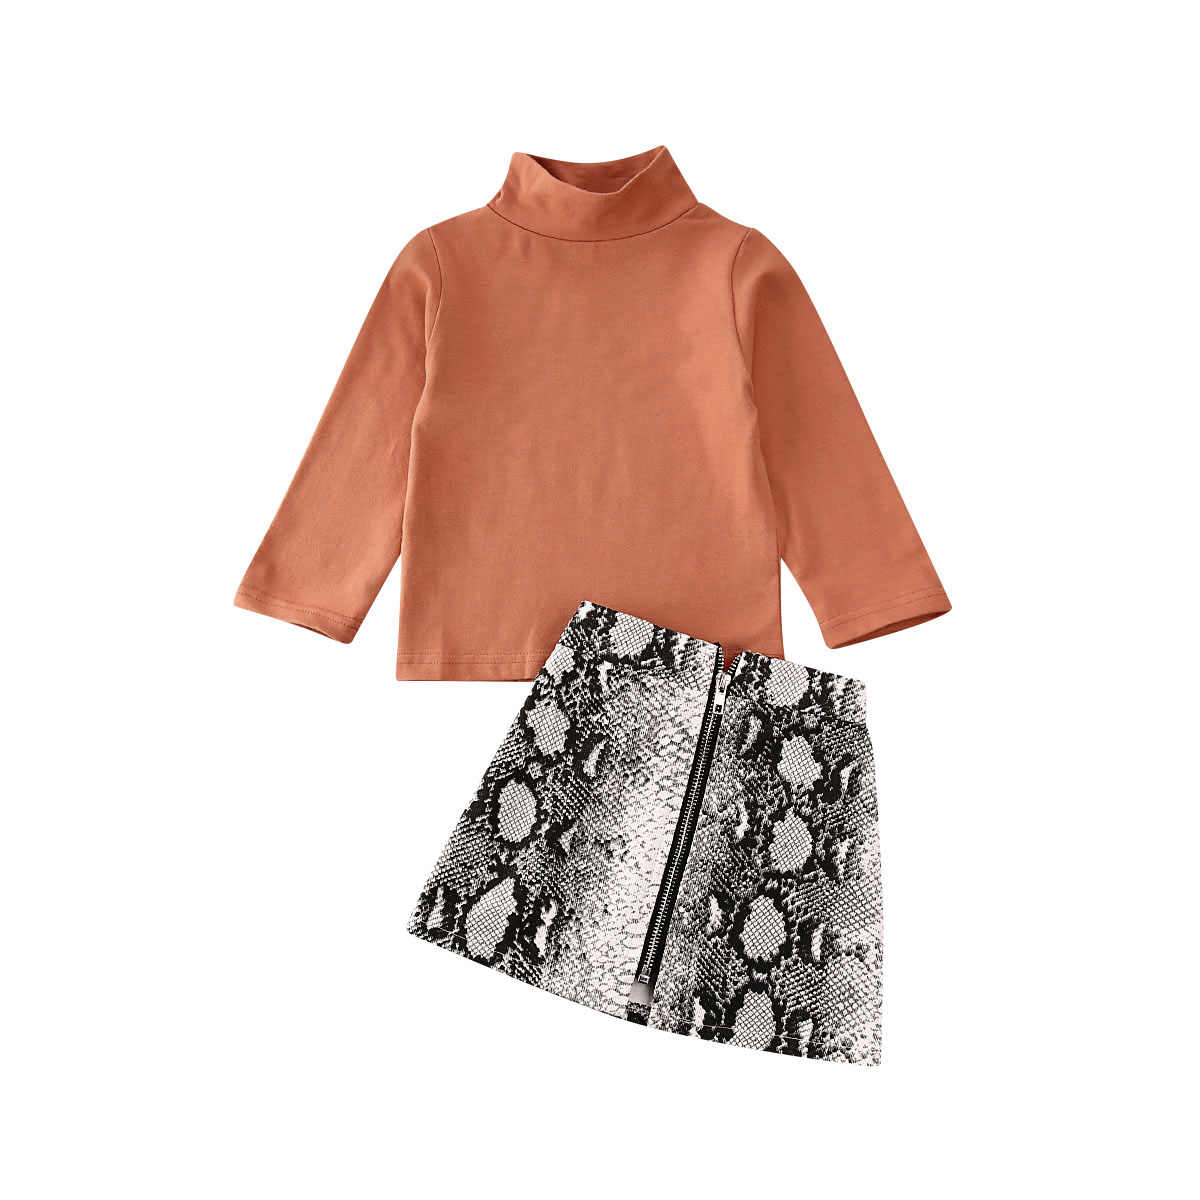 Autumn Toddler Kid Baby Girl Clothes Set 2pcs Turtleneck Solid Long Sleeve Top+Snake Print A-Line Skirt Outfit